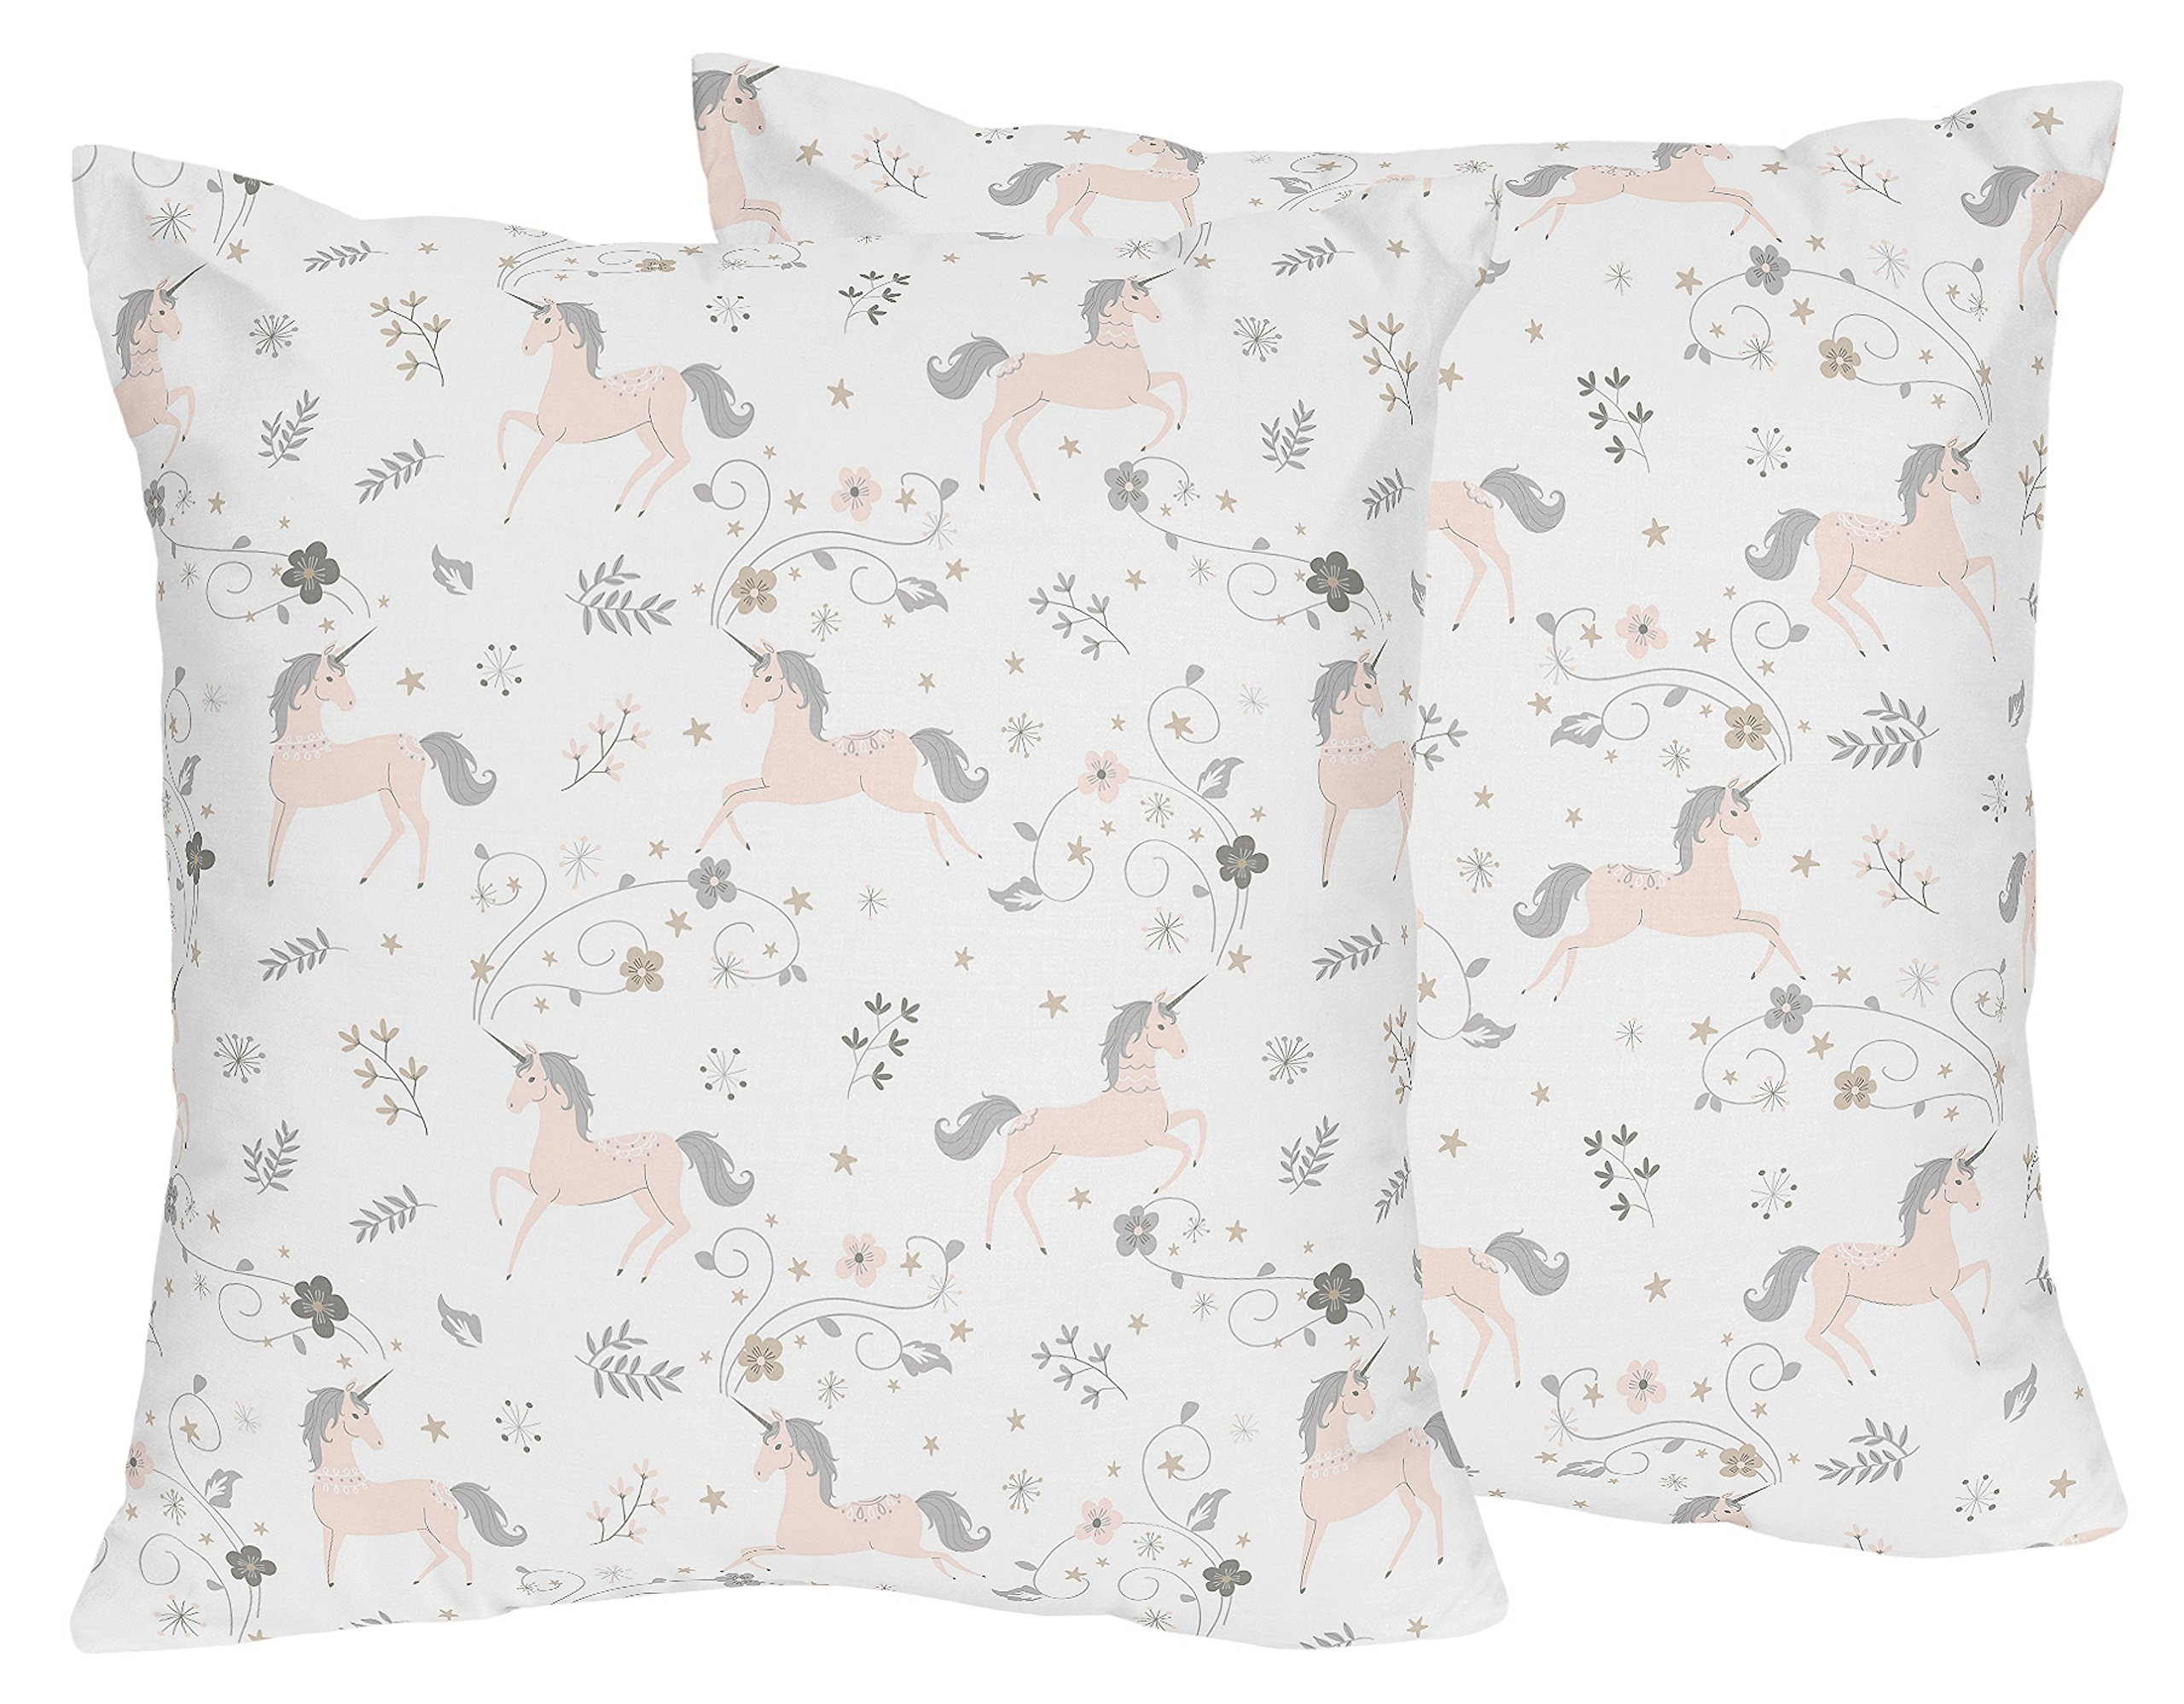 Sweet Jojo Designs Decorative Accent Throw Pillows for Unicorn Collection - Set of 2, Pink, Grey and Gold